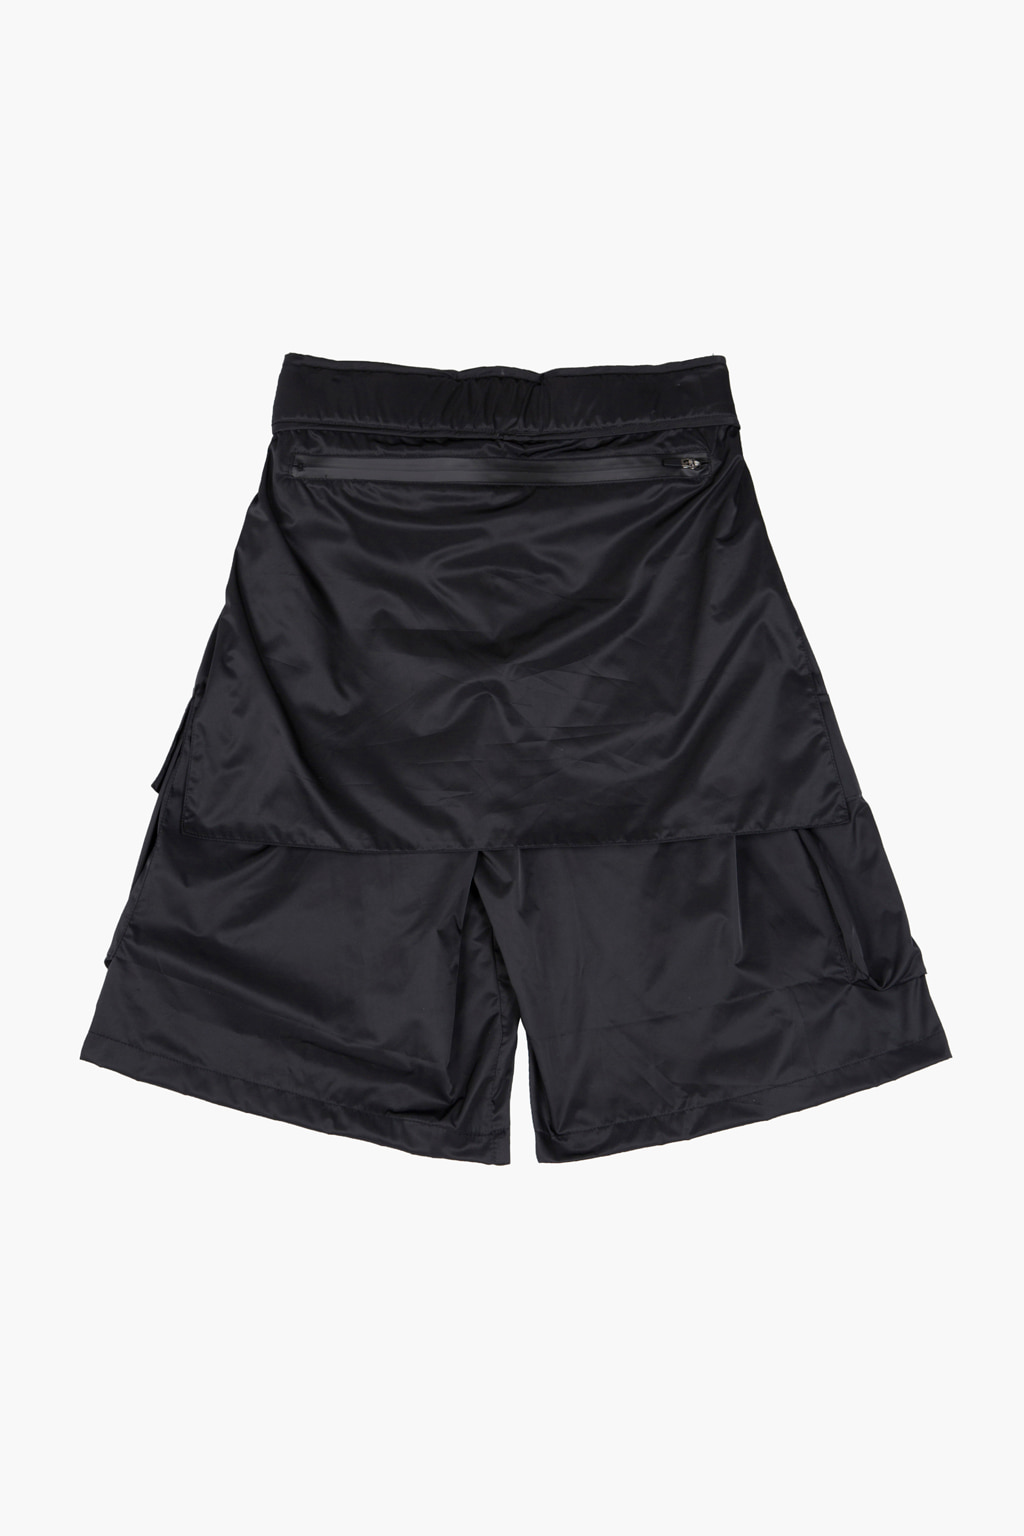 Obi Belt Detail Cargo Pocket Shorts - black